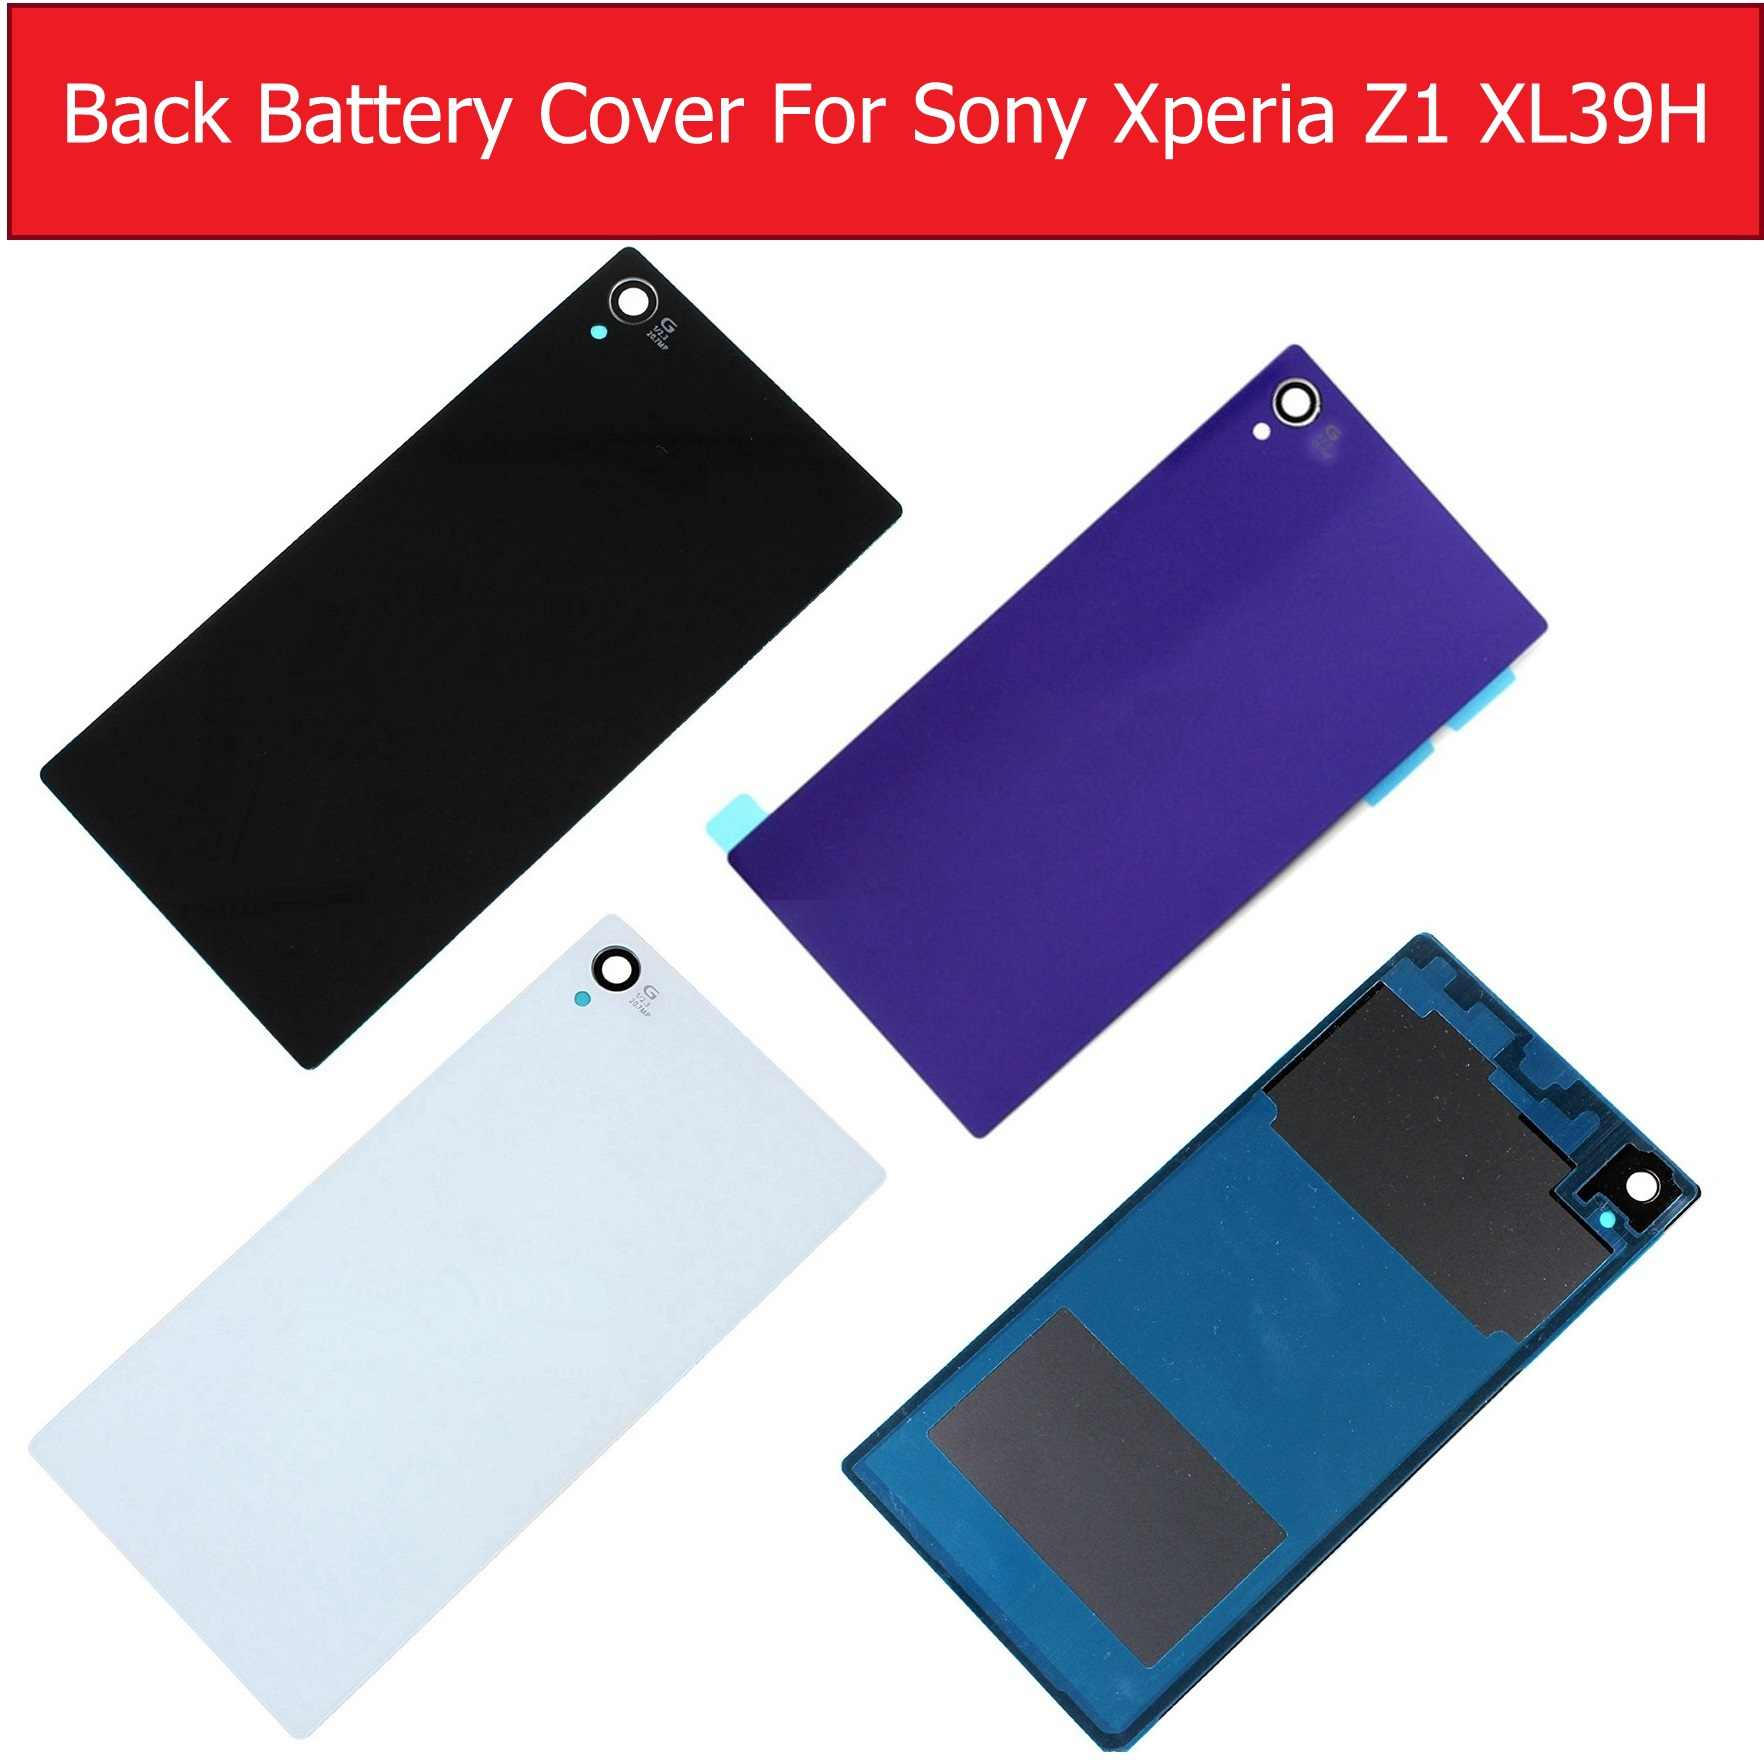 Back Battery Door Housing Glass Cover for Sony xperia Z1 L39H C6902 C6903 C6905 C6906 Glass Rear Cover case + 1piece film Free